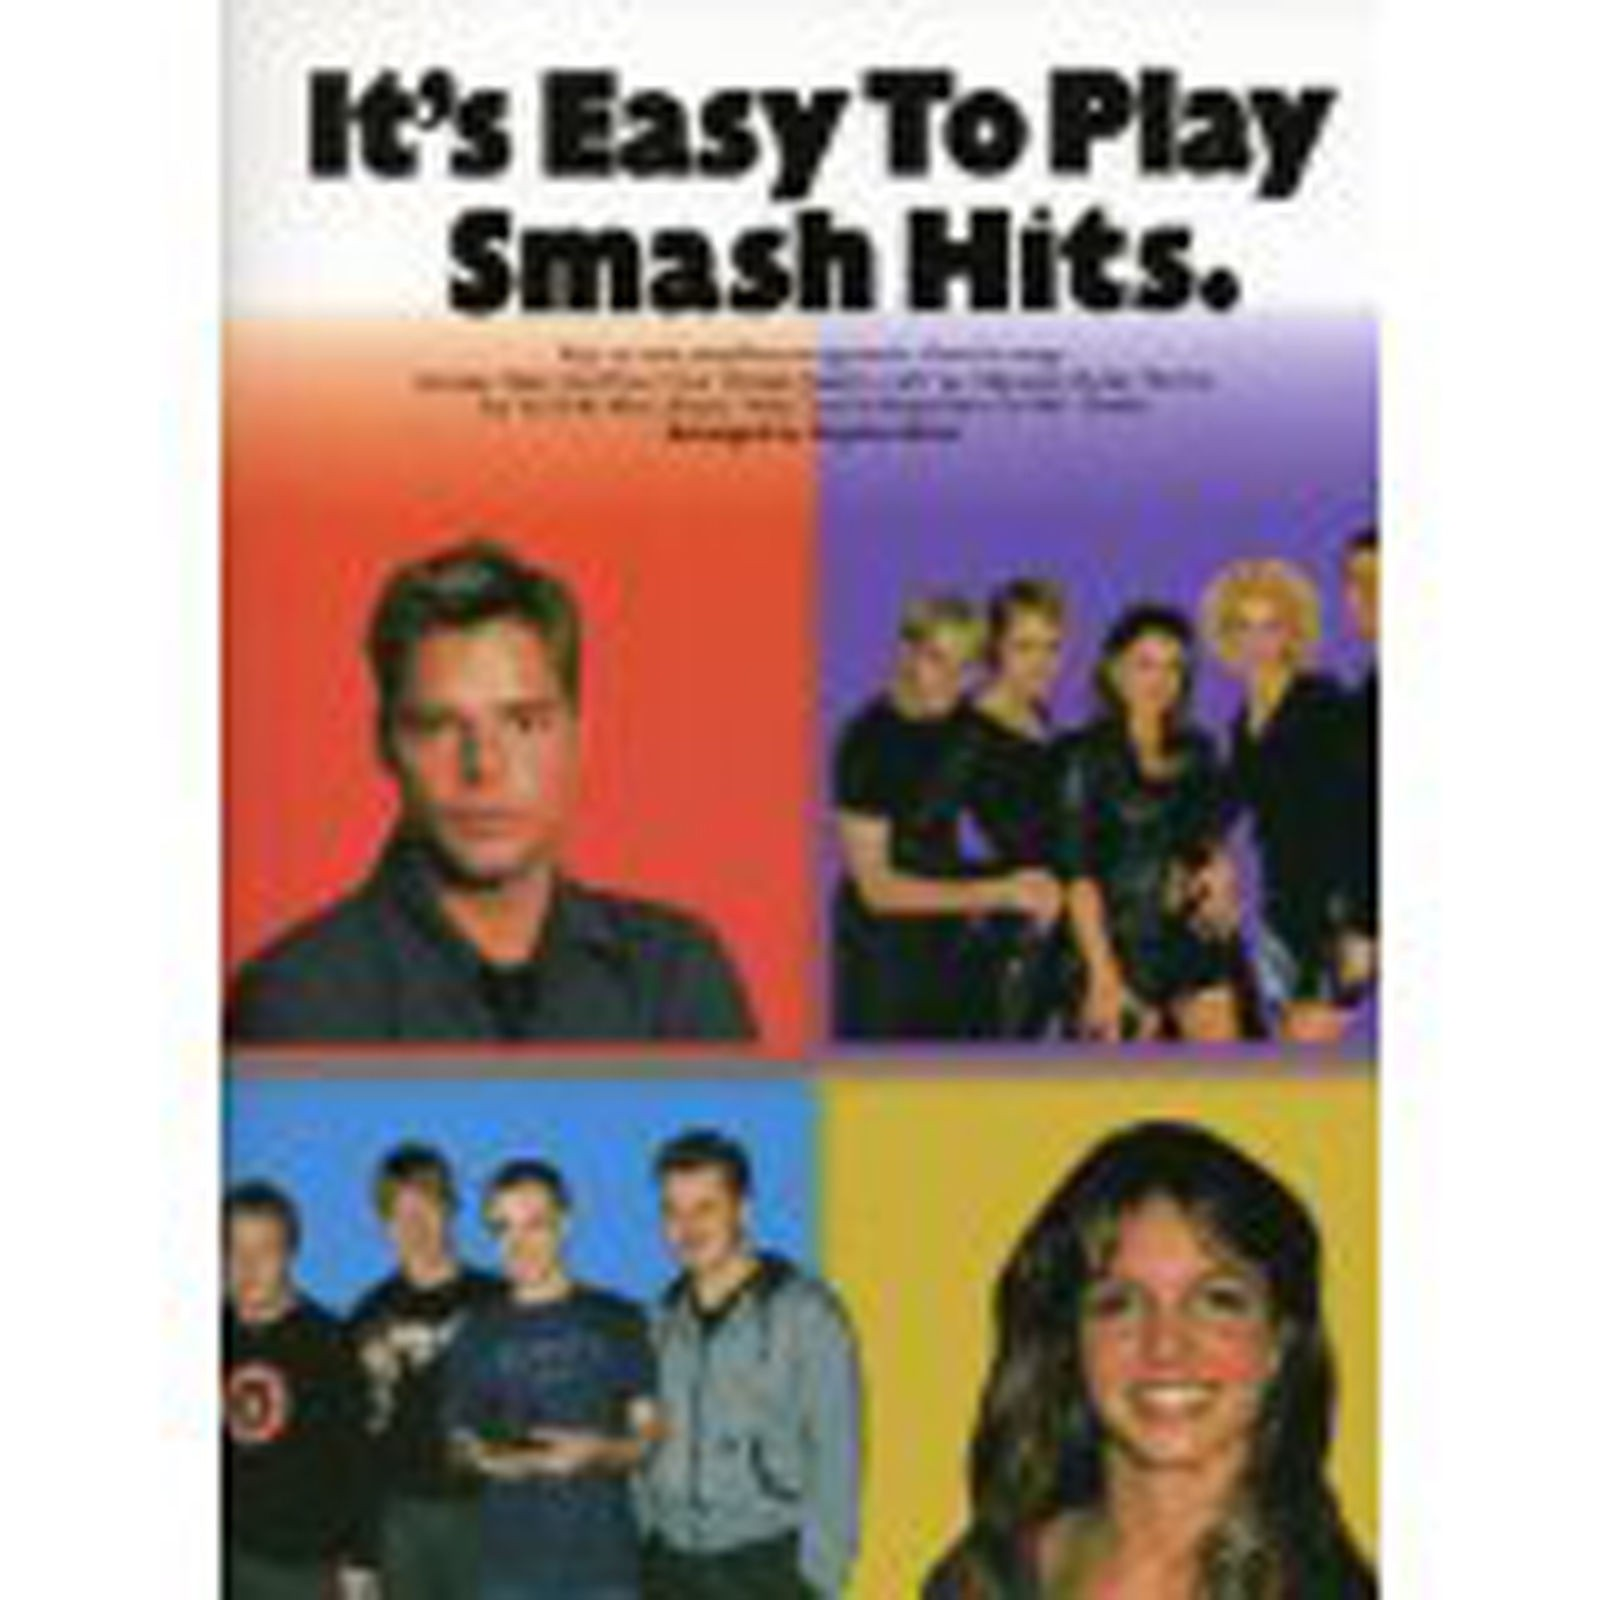 It's Easy to Play Smash Hits Piano Sheet Music Songbook Nineties Songs S15